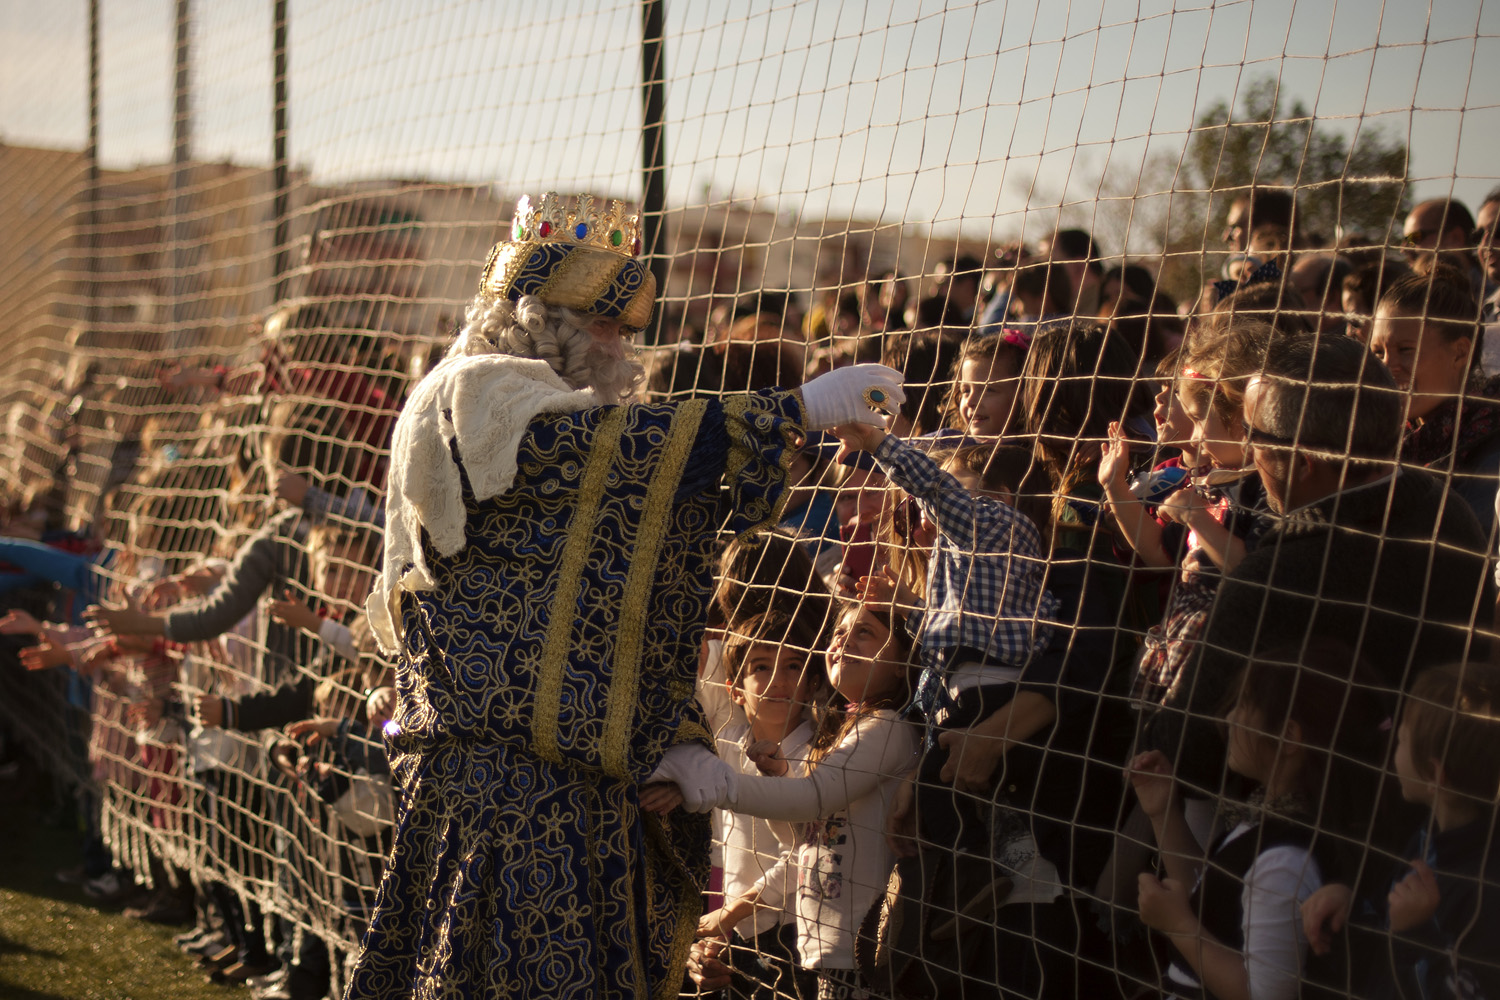 Jan. 5, 2014. A man dressed as King Melchior meets children upon his arrival with men dressed as Kings Balthazar and Caspar, otherwise known as the three wise men or Kings, in Fuengirola, southern Spain, during an Epiphany street parade.